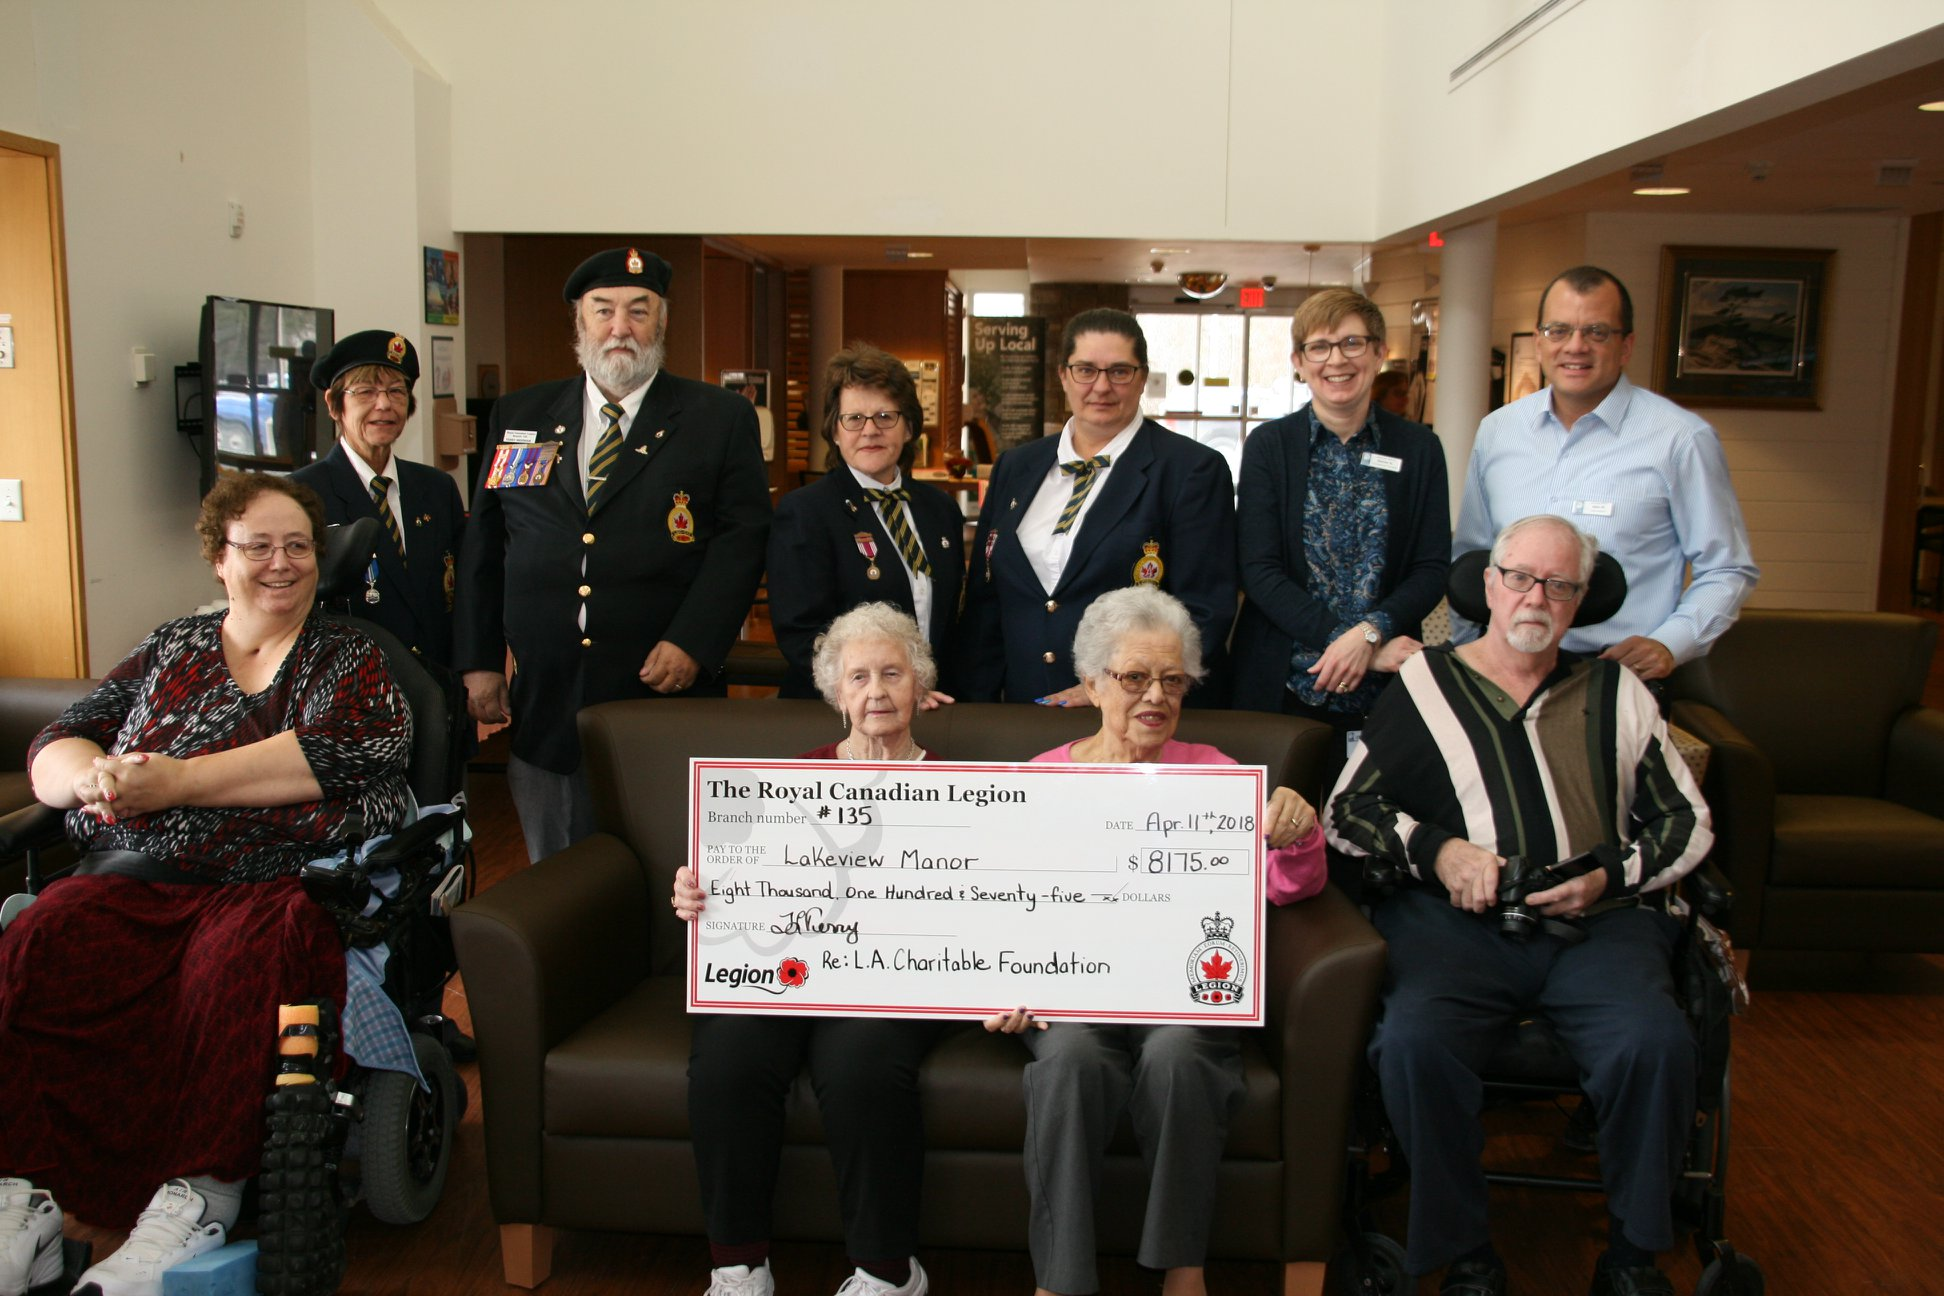 Beaverton Legion Ladies Auxiliary donates nearly $8,200 for new equipment at Lakeview Manor